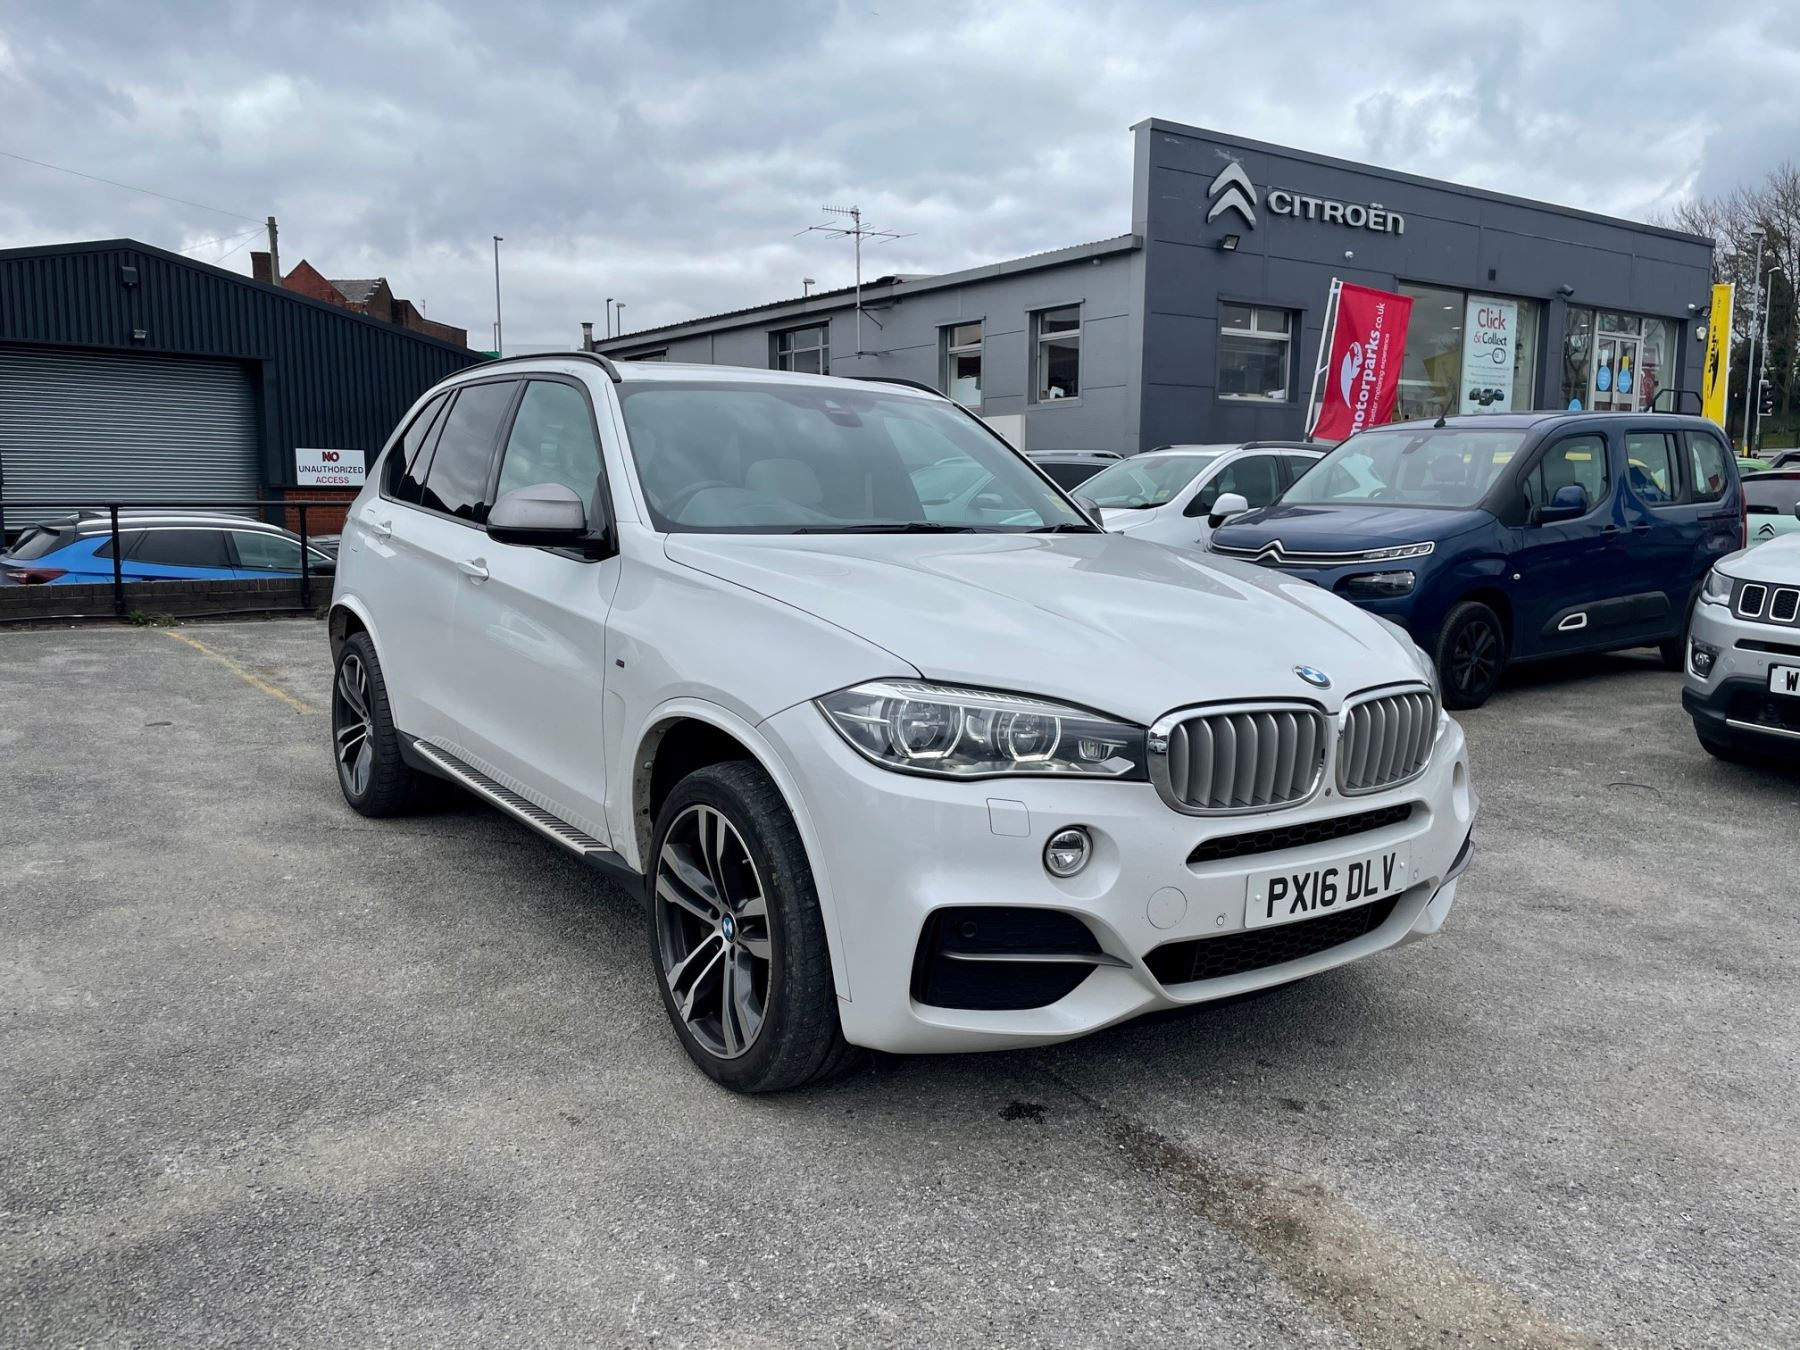 BMW X5 xDrive M50d 5dr 3.0 Diesel Automatic Estate (2016) image